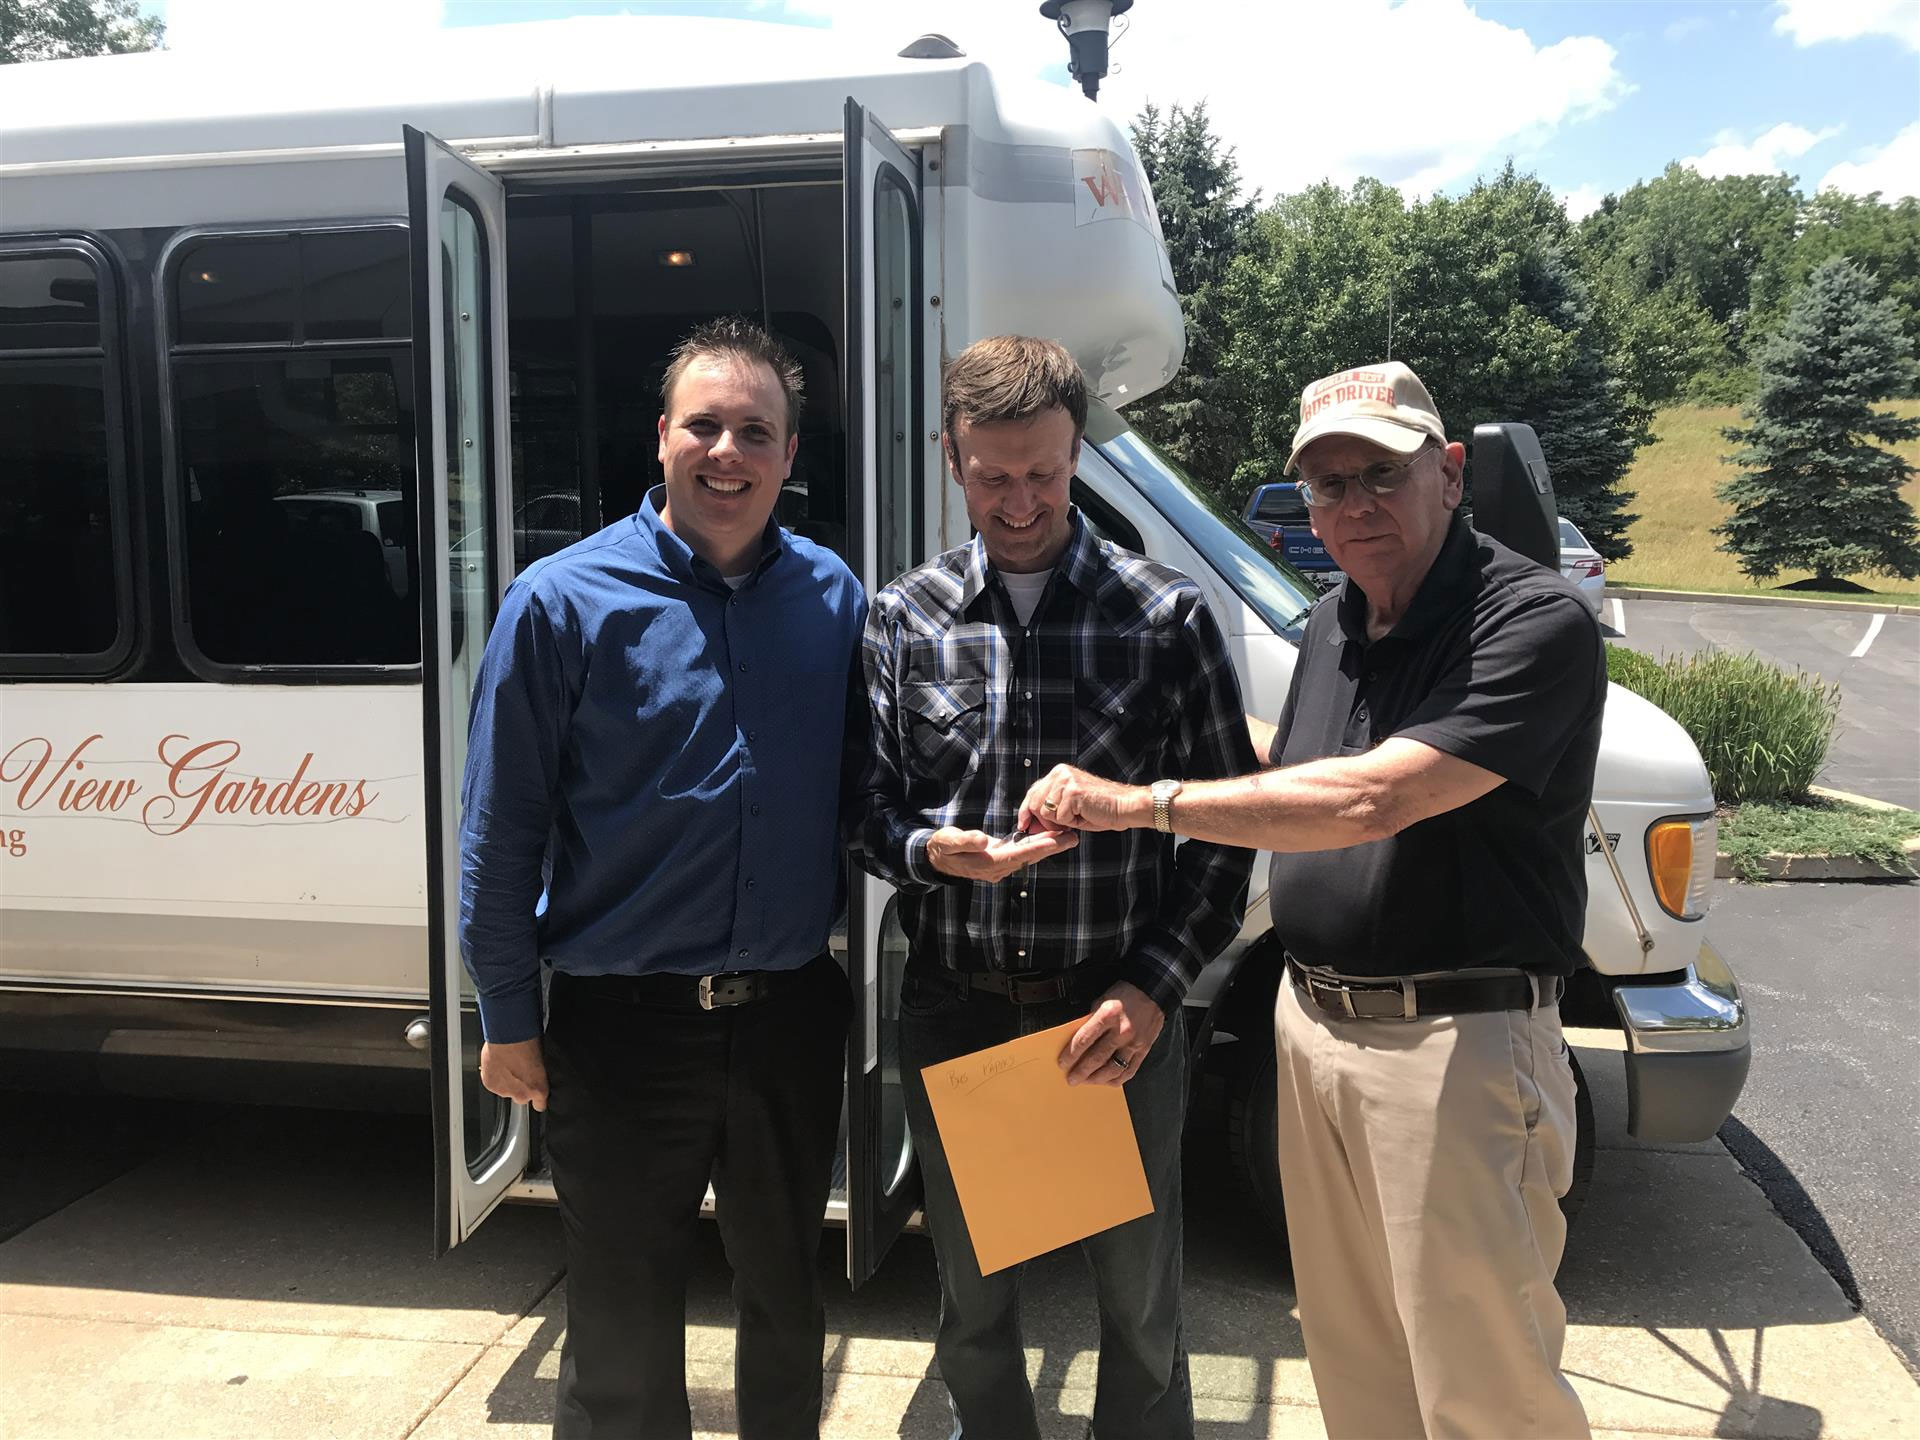 Autumn View Gardens Donates Bus to Church in Need